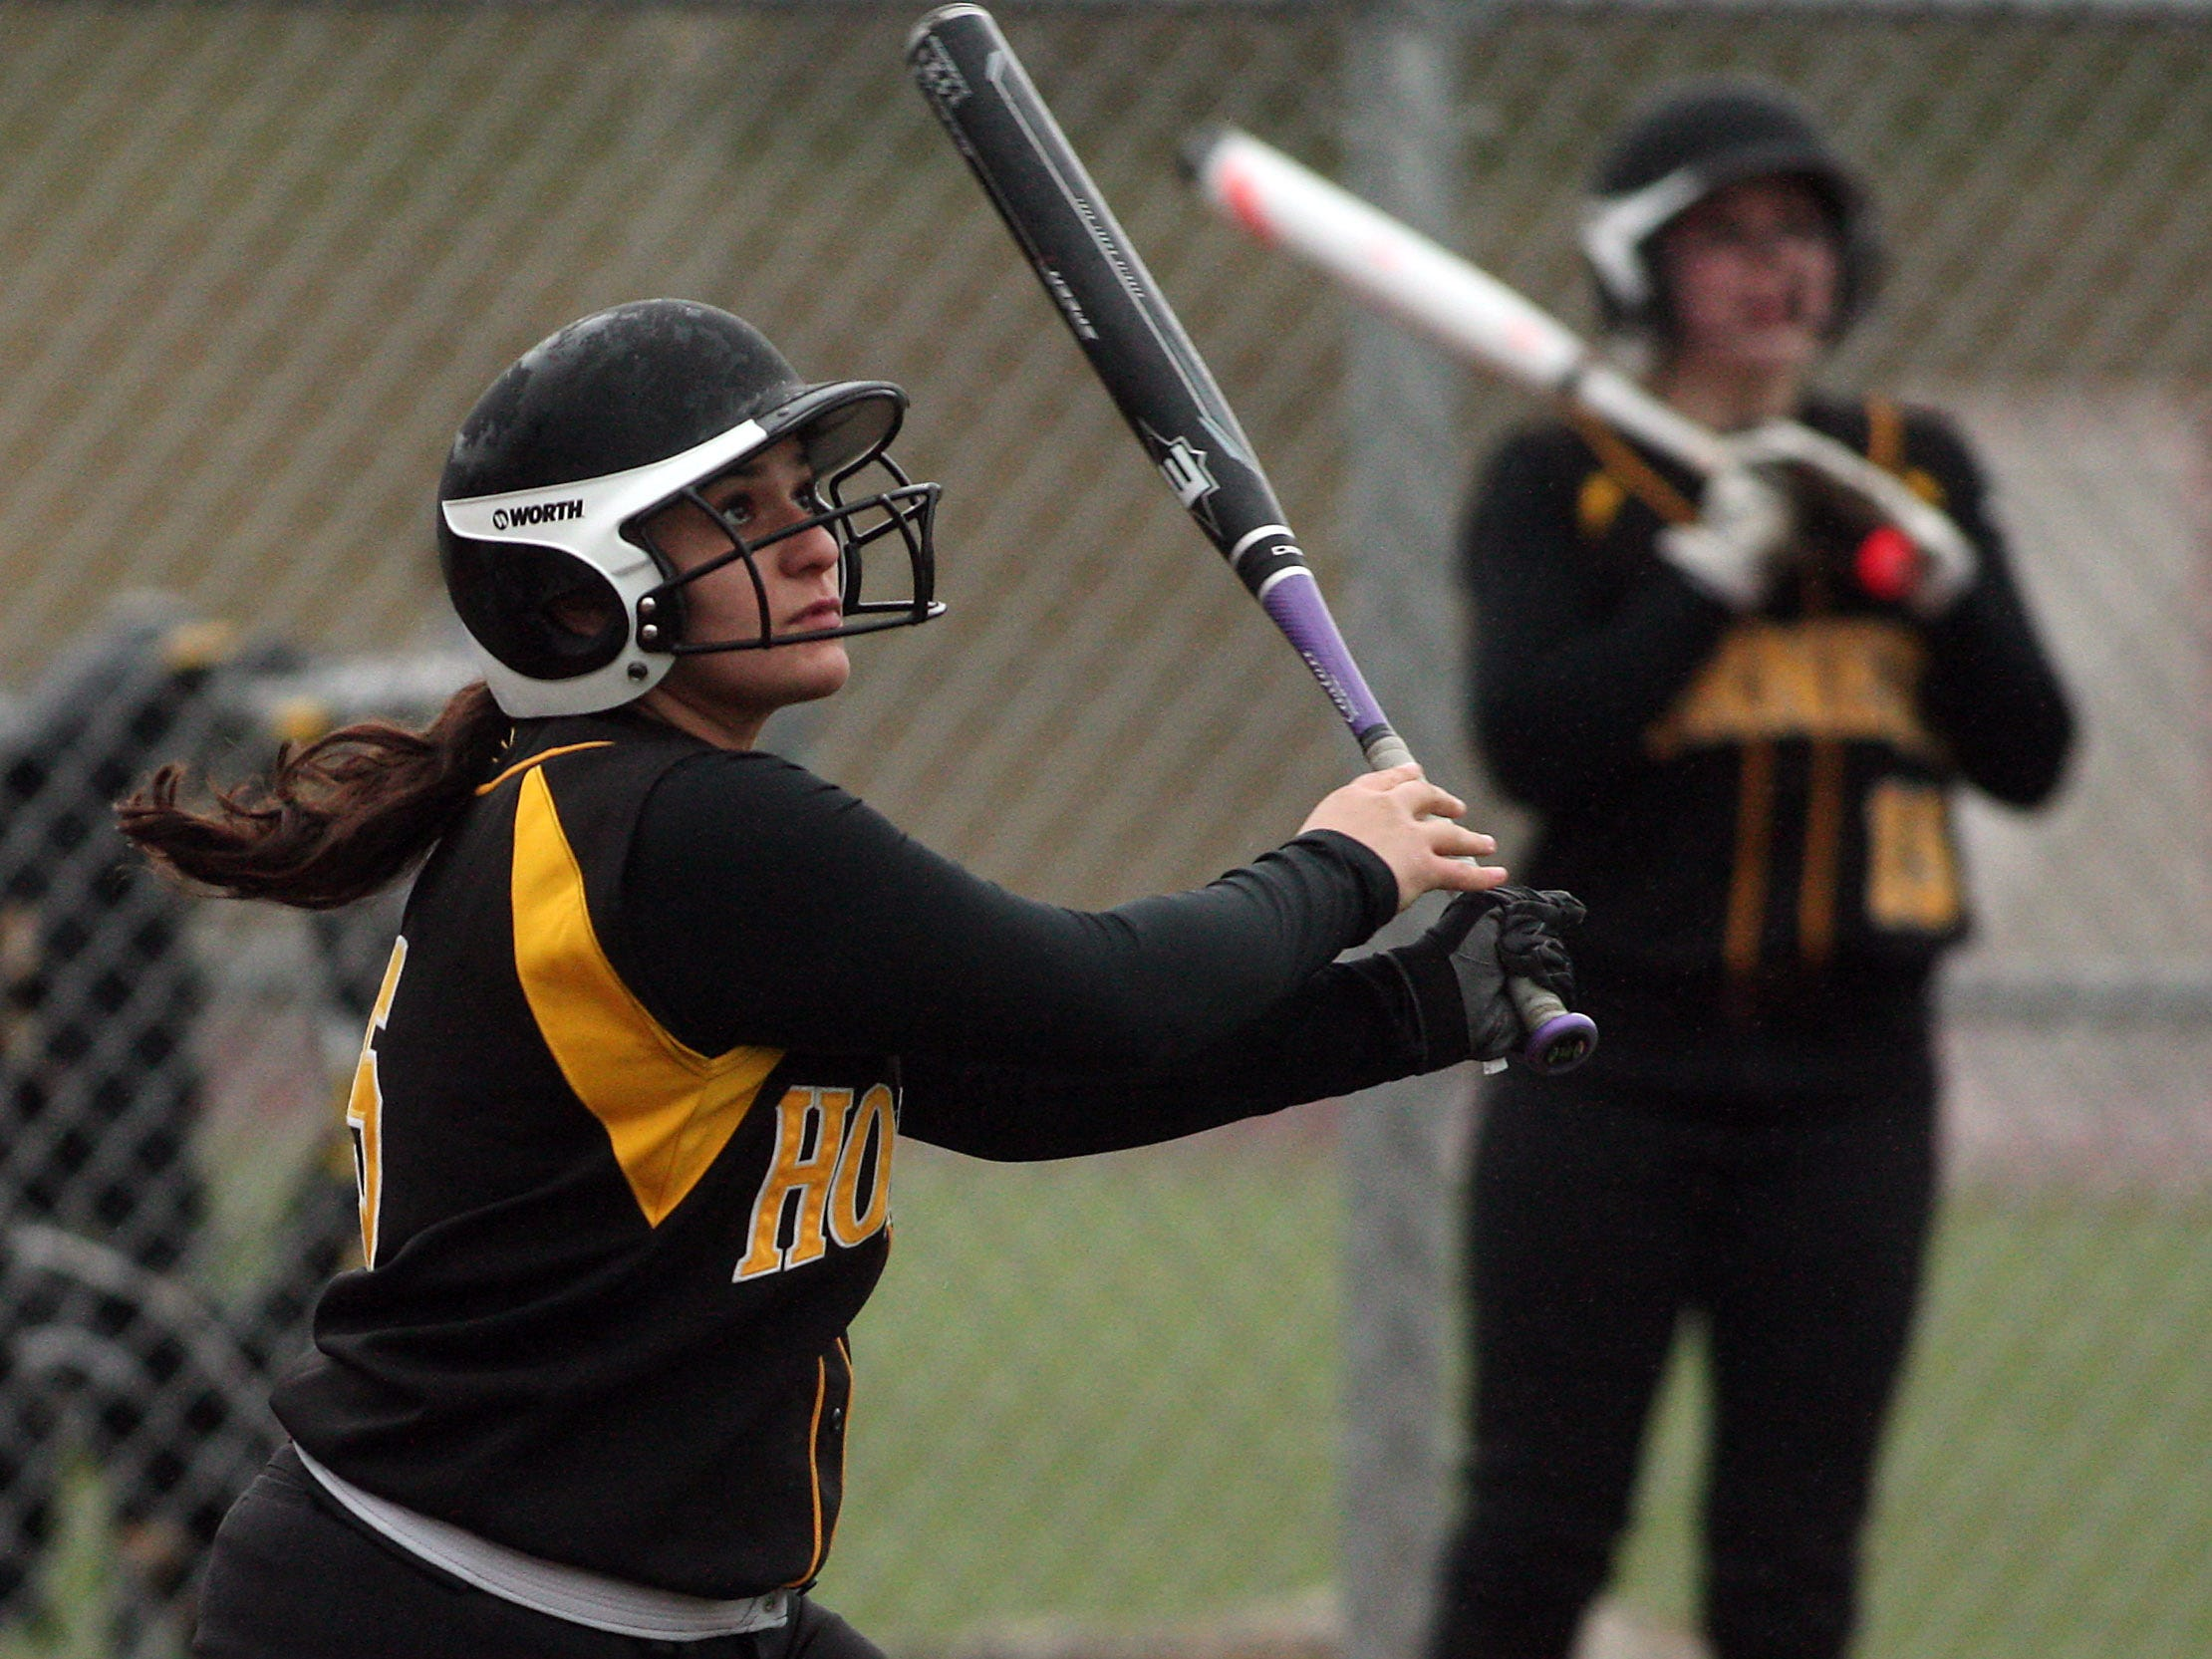 Hanover Park's Alex Cosenzo watches her three-run home run clear the right field fence at Morristown Beard. The homer would prove the game winner as Hornets won 9-5 in nine innings